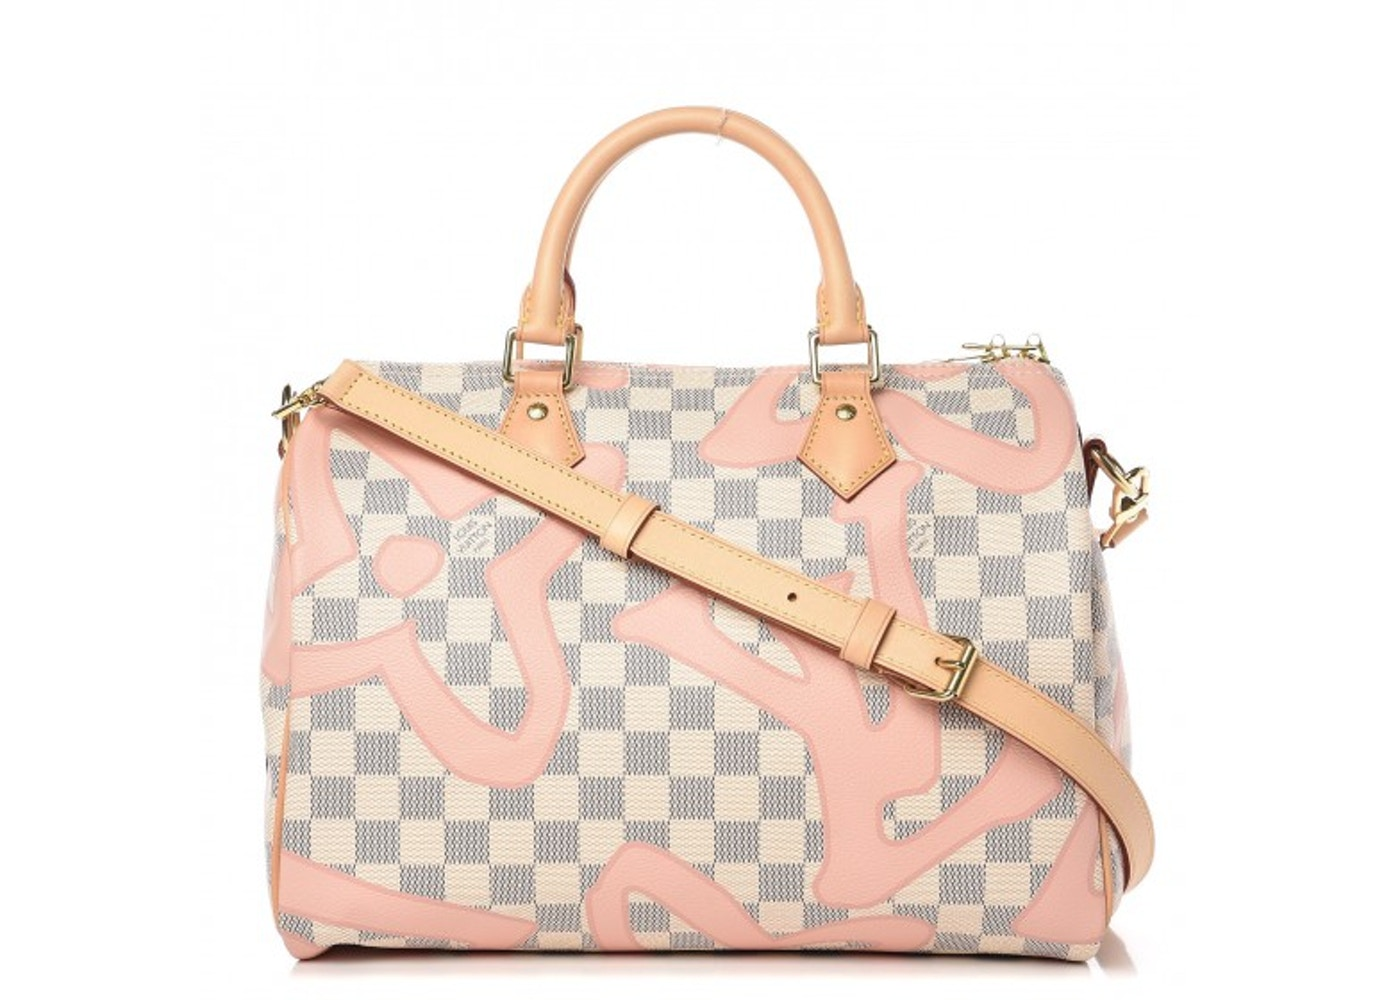 outlet boutique comfortable feel classic style Louis Vuitton Speedy Bandouliere Damier Azur Tahitienne 30 Rose Ballerine